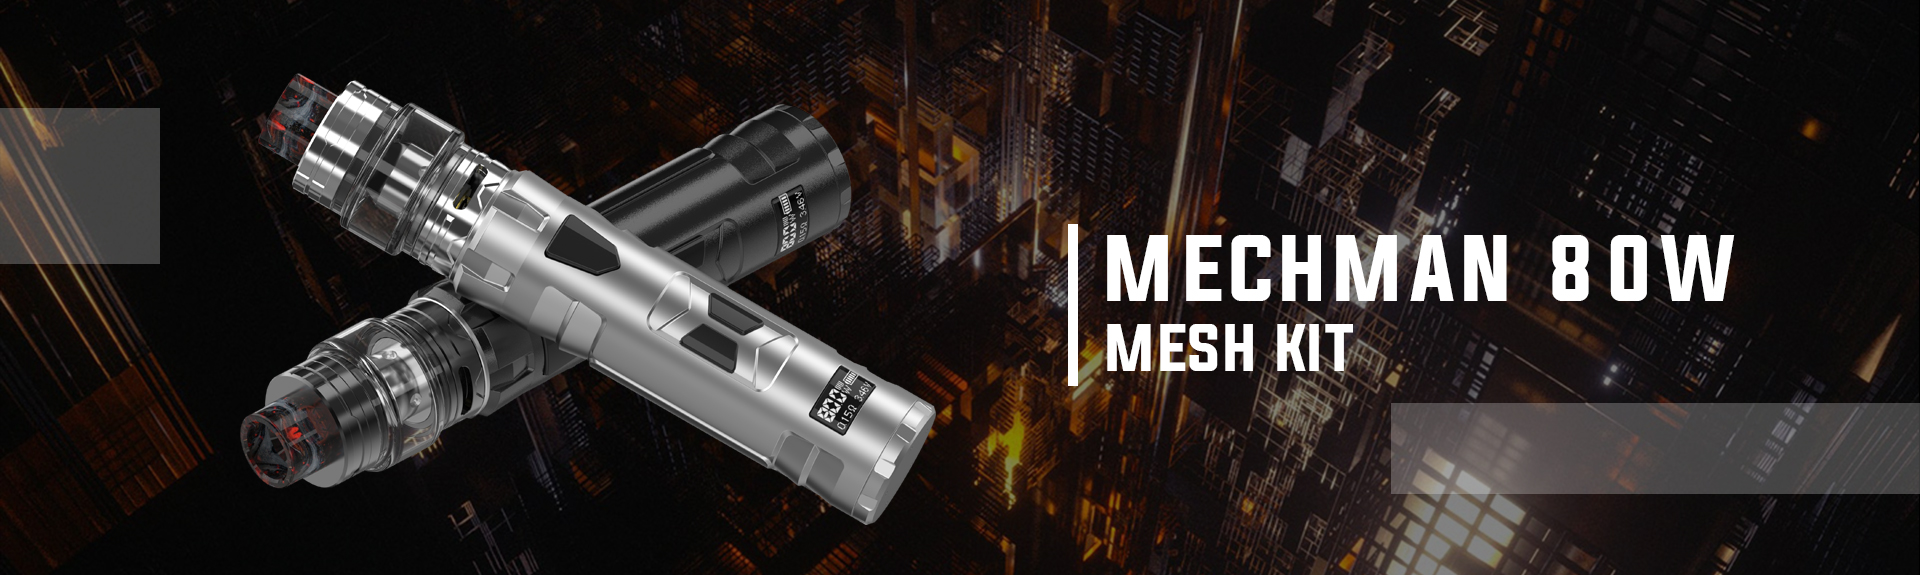 Rincoe Mechman 80W Mesh Kit